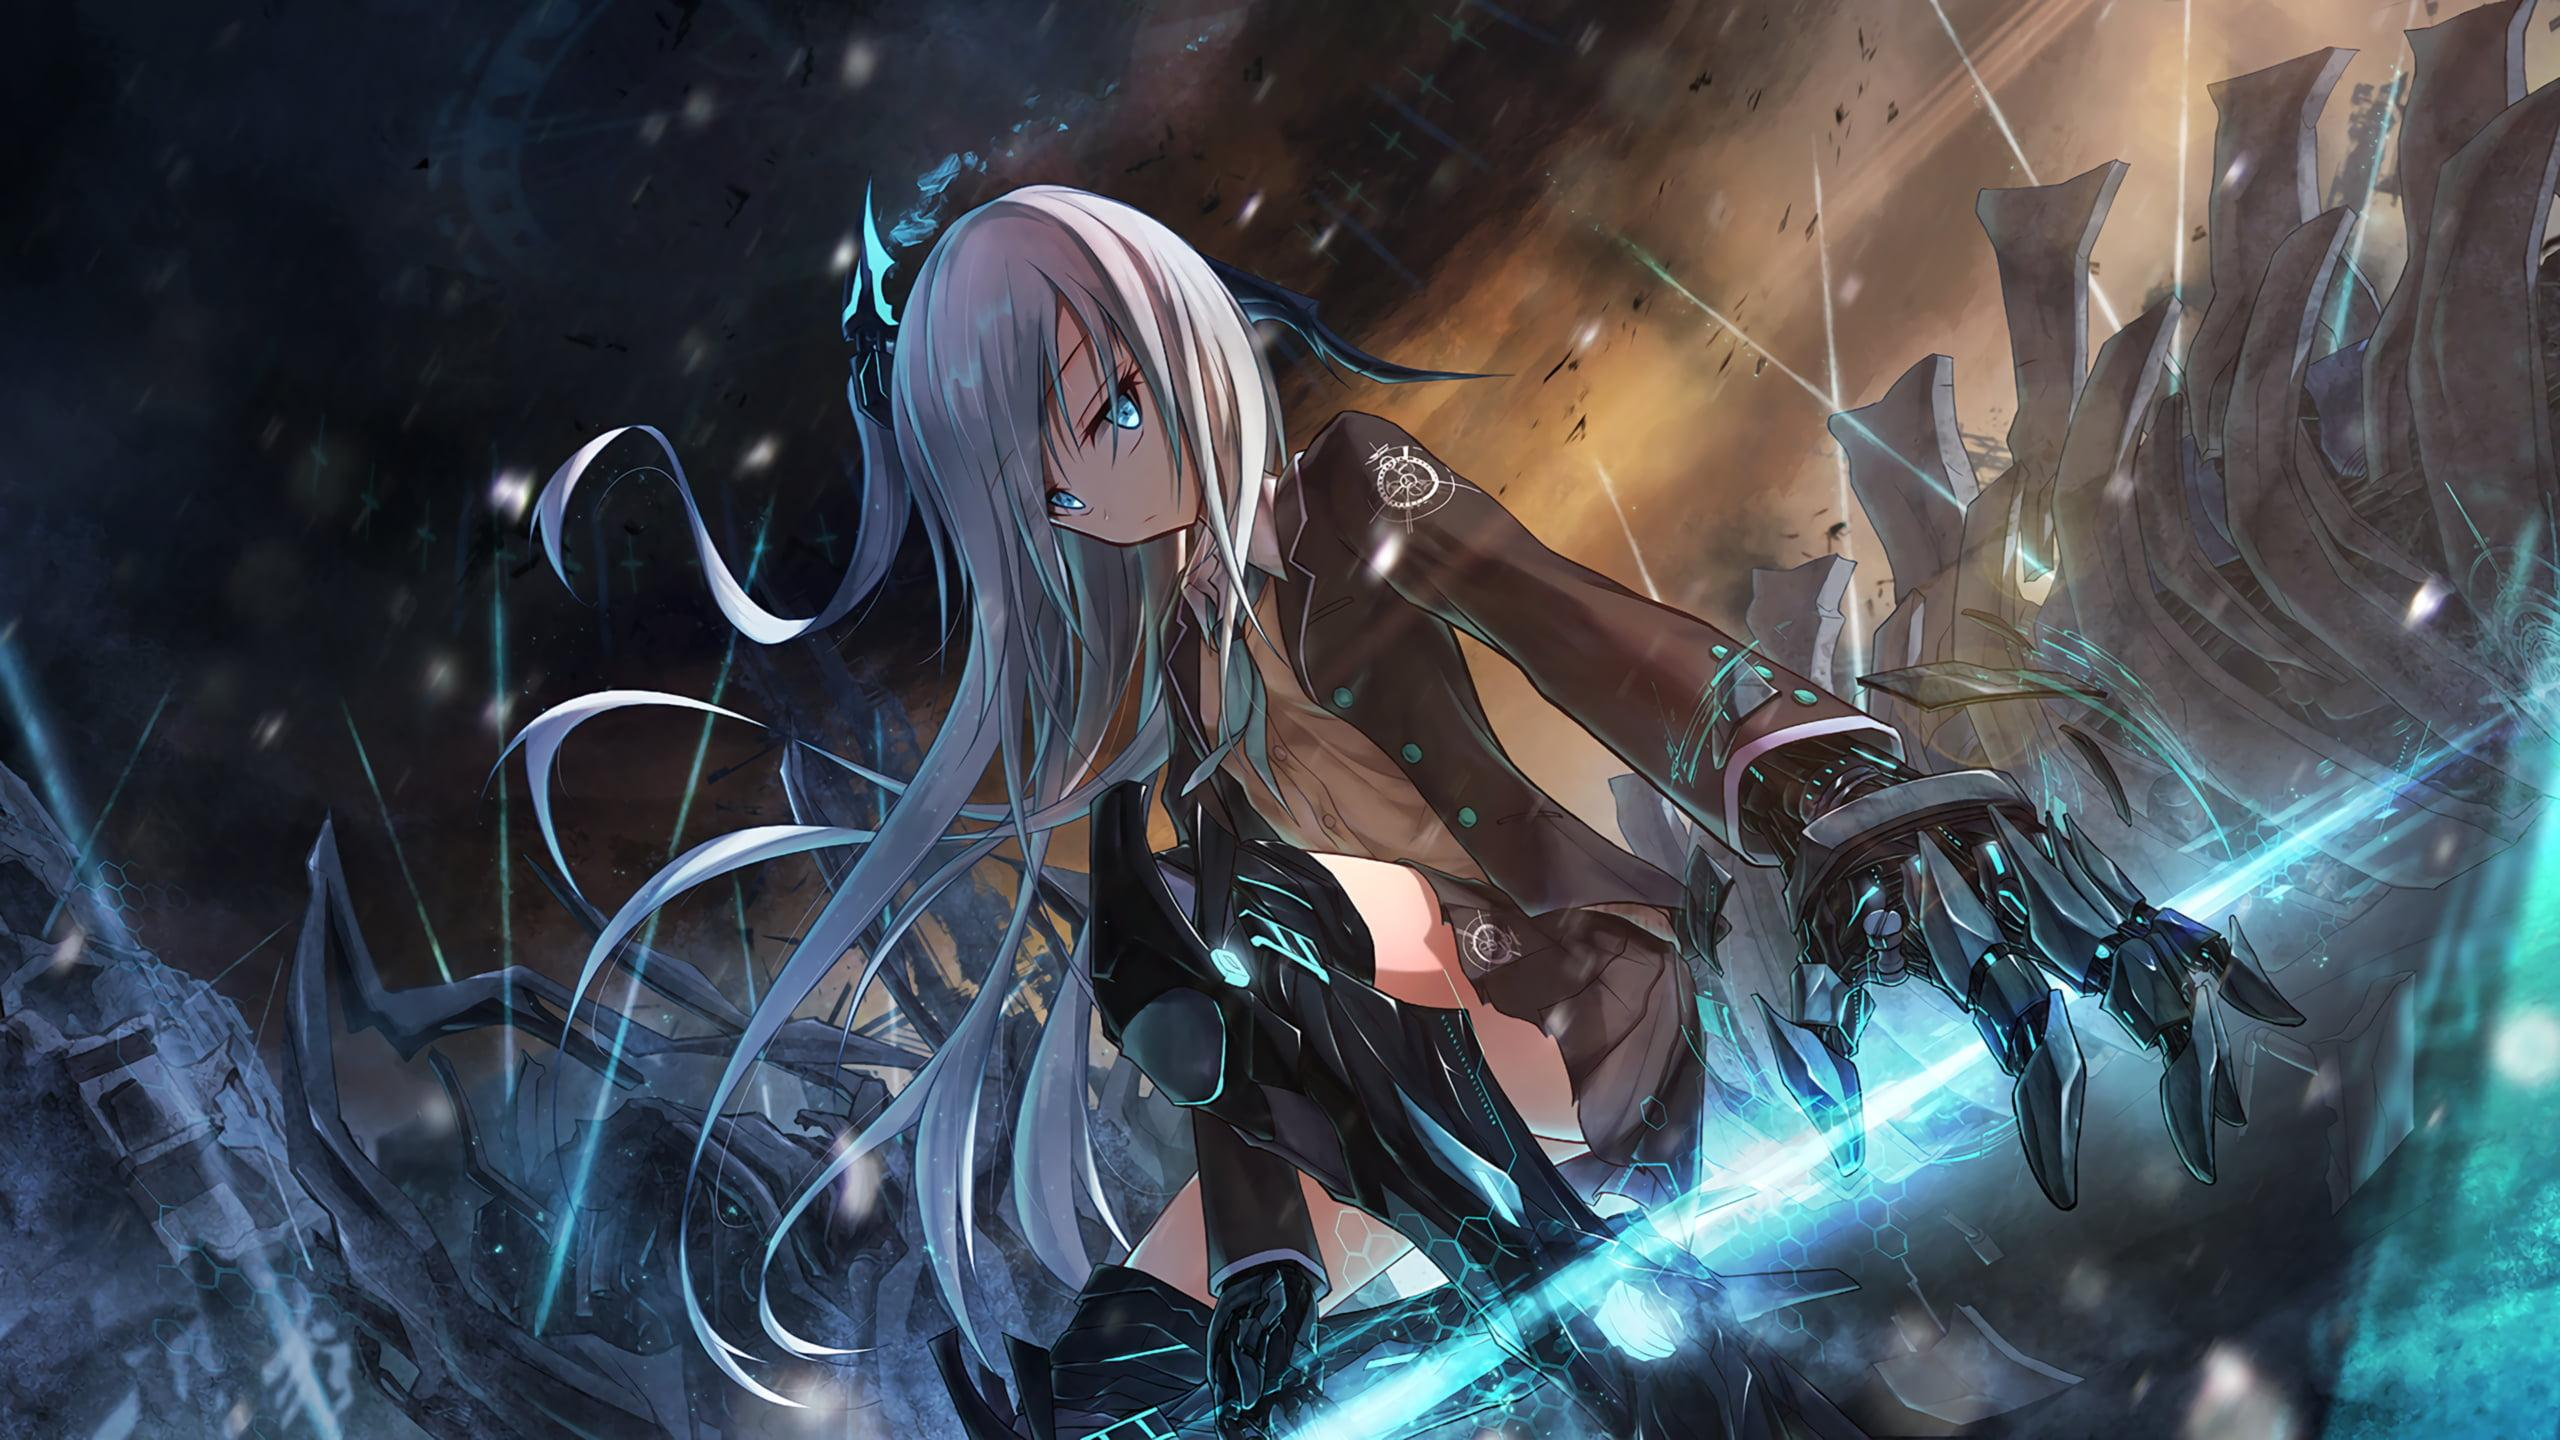 Cyborg Anime Wallpapers - Wallpaper Cave